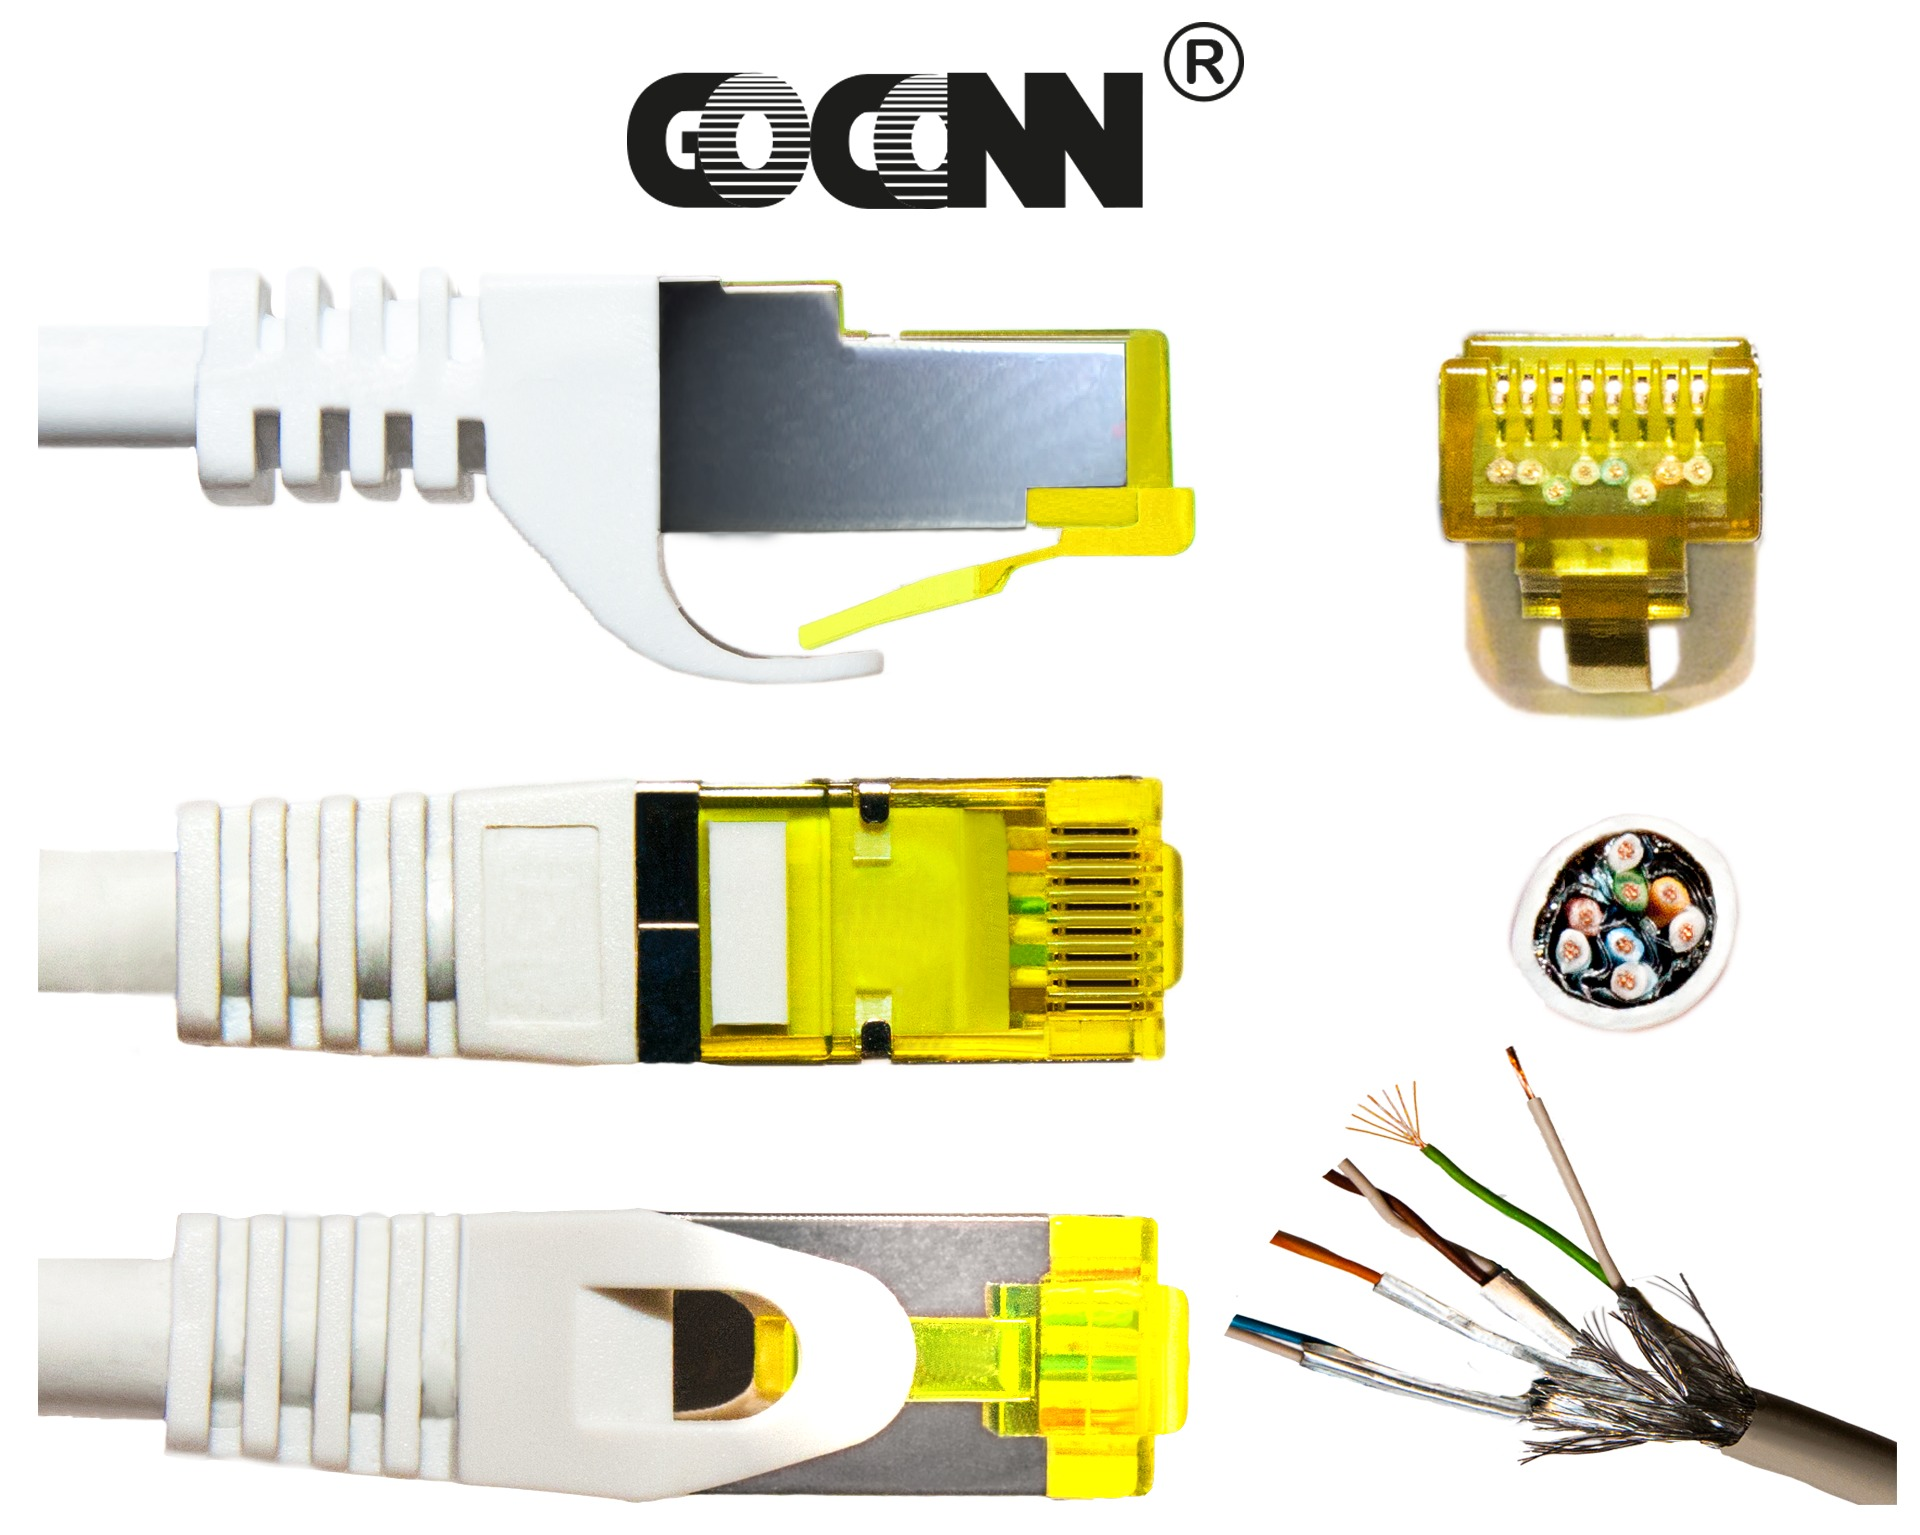 GoConn Patchkabel mit Cat7 Rohkabel 10m orange S/FTP PiMF 500MHz 2xgeschirmt